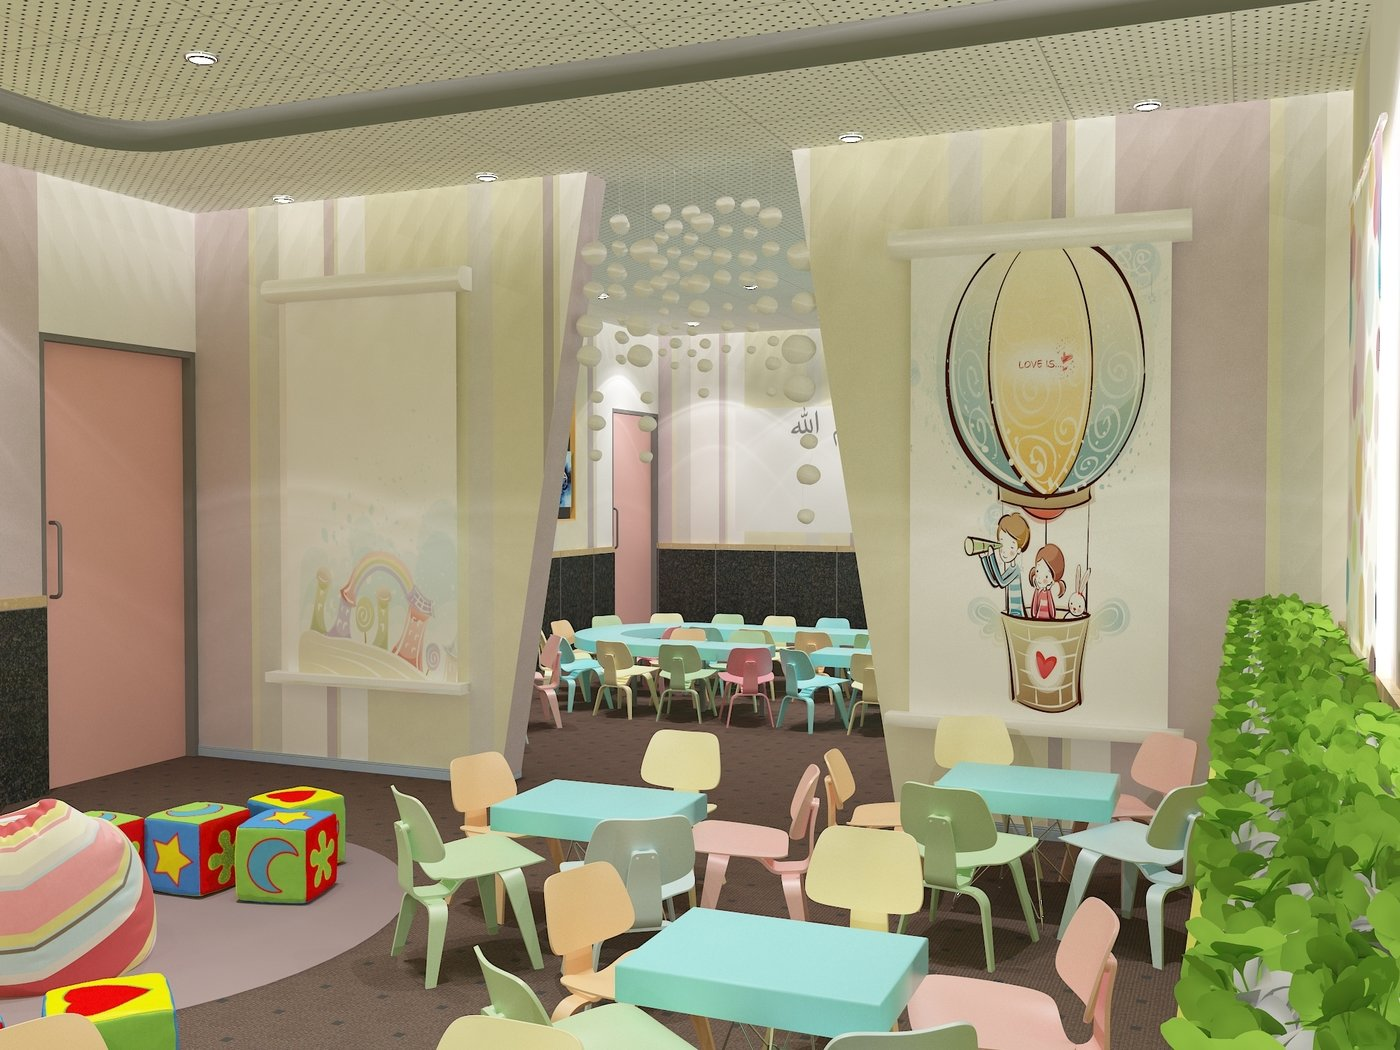 class design for elementary school by mitra khatami at ...